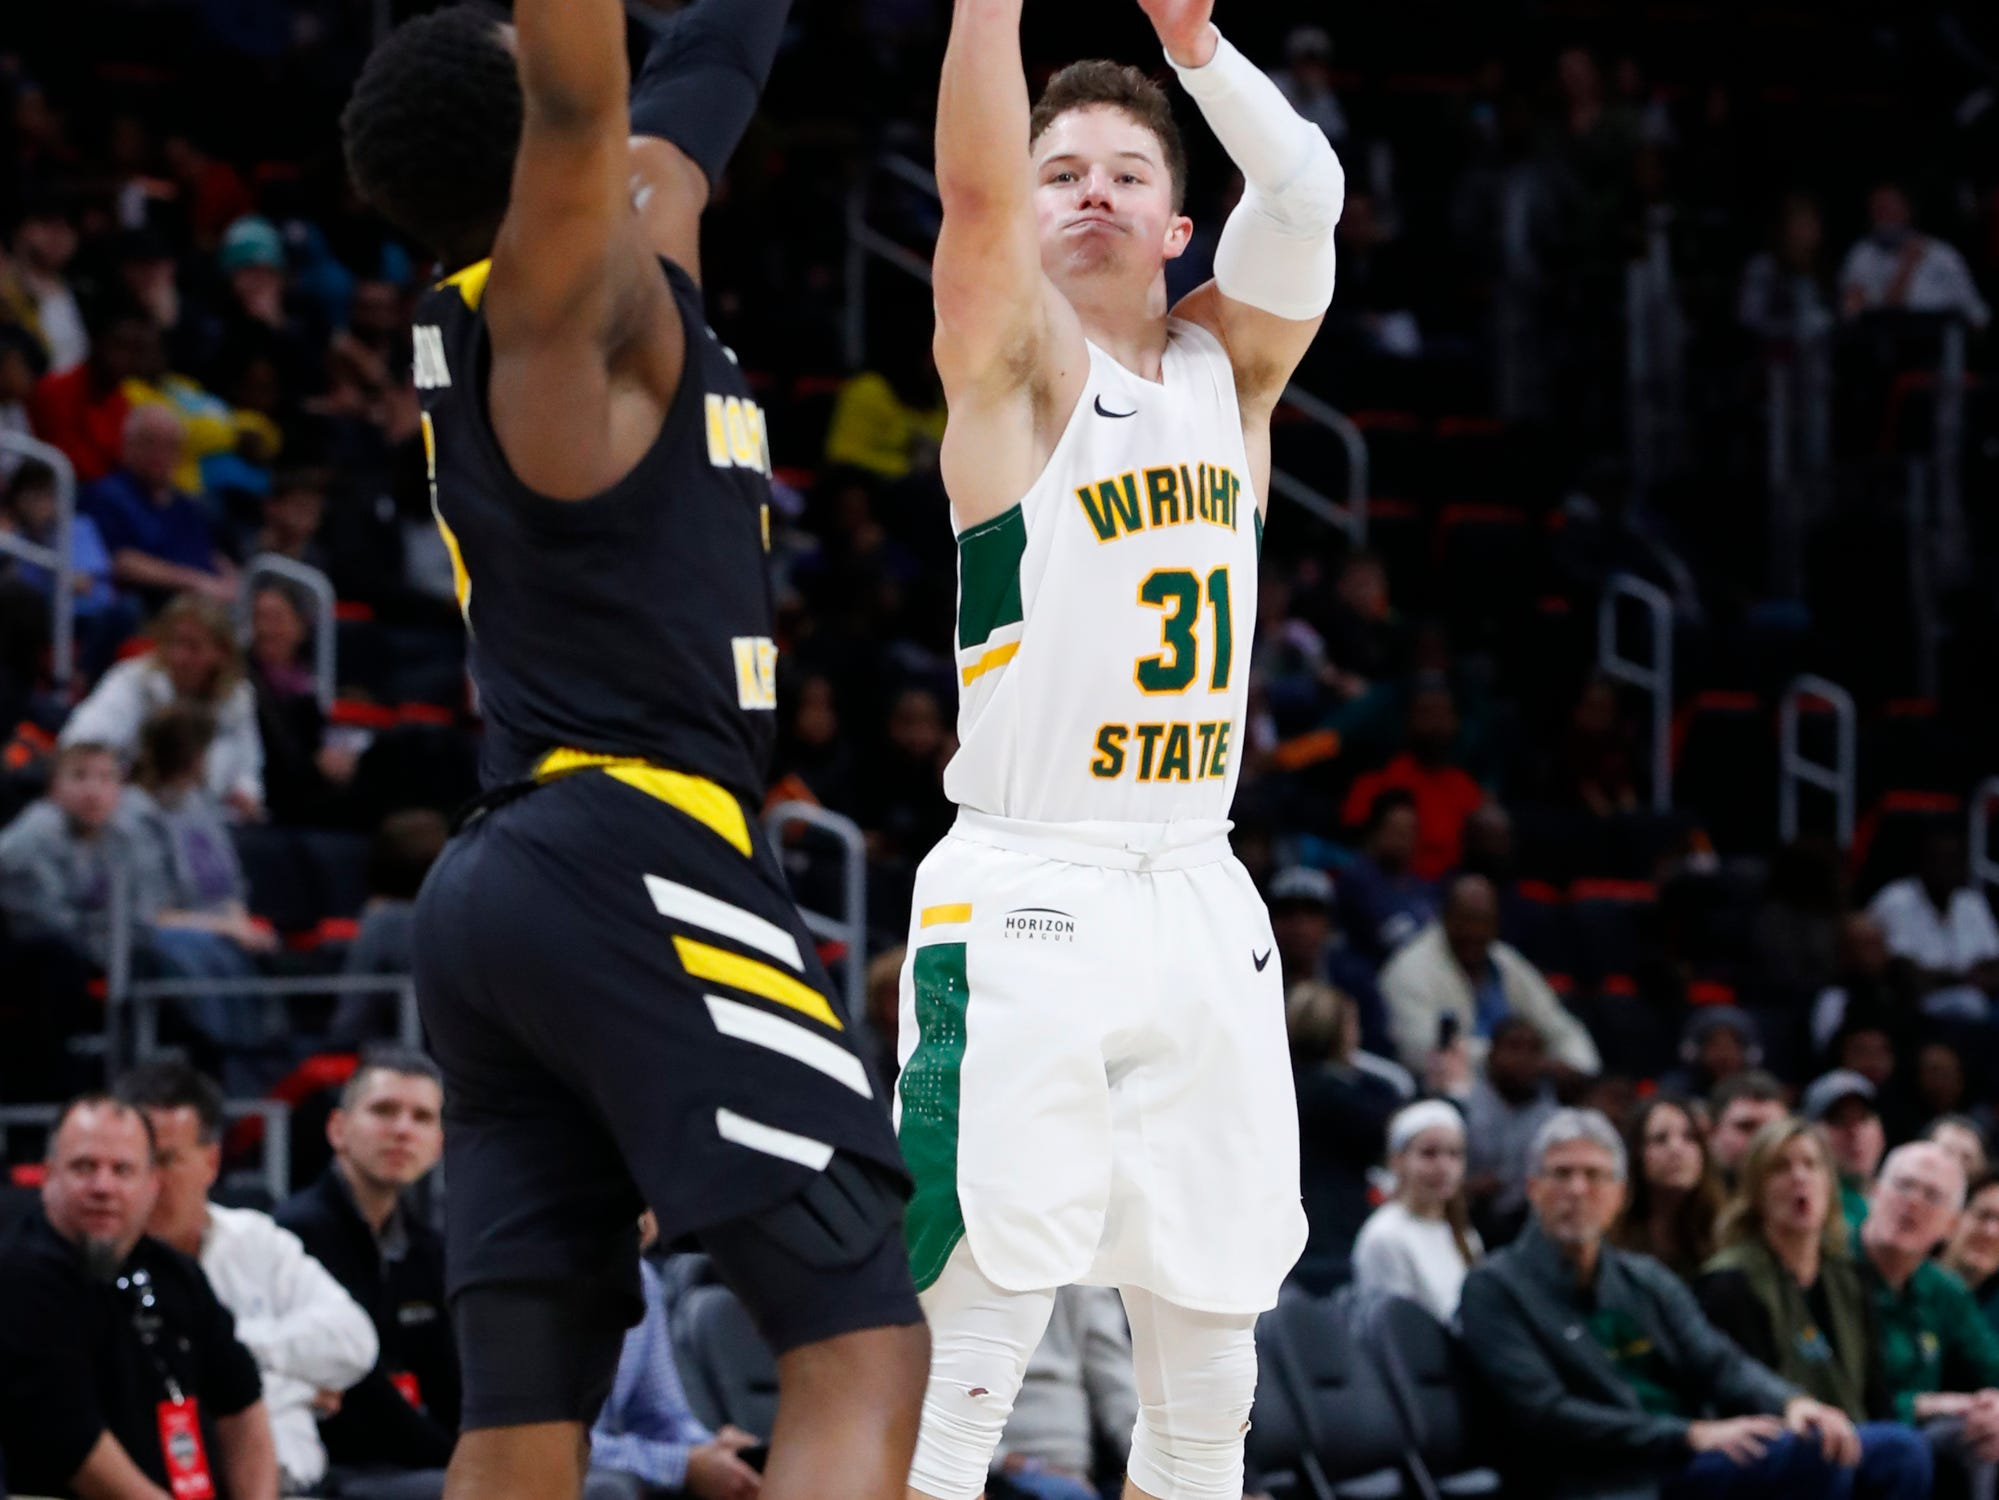 Wright State guard Cole Gentry (31) shoots against Northern Kentucky in the first half of an NCAA men's basketball game in the Horizon League conference tournament championship in Detroit, Tuesday, March 12, 2019.